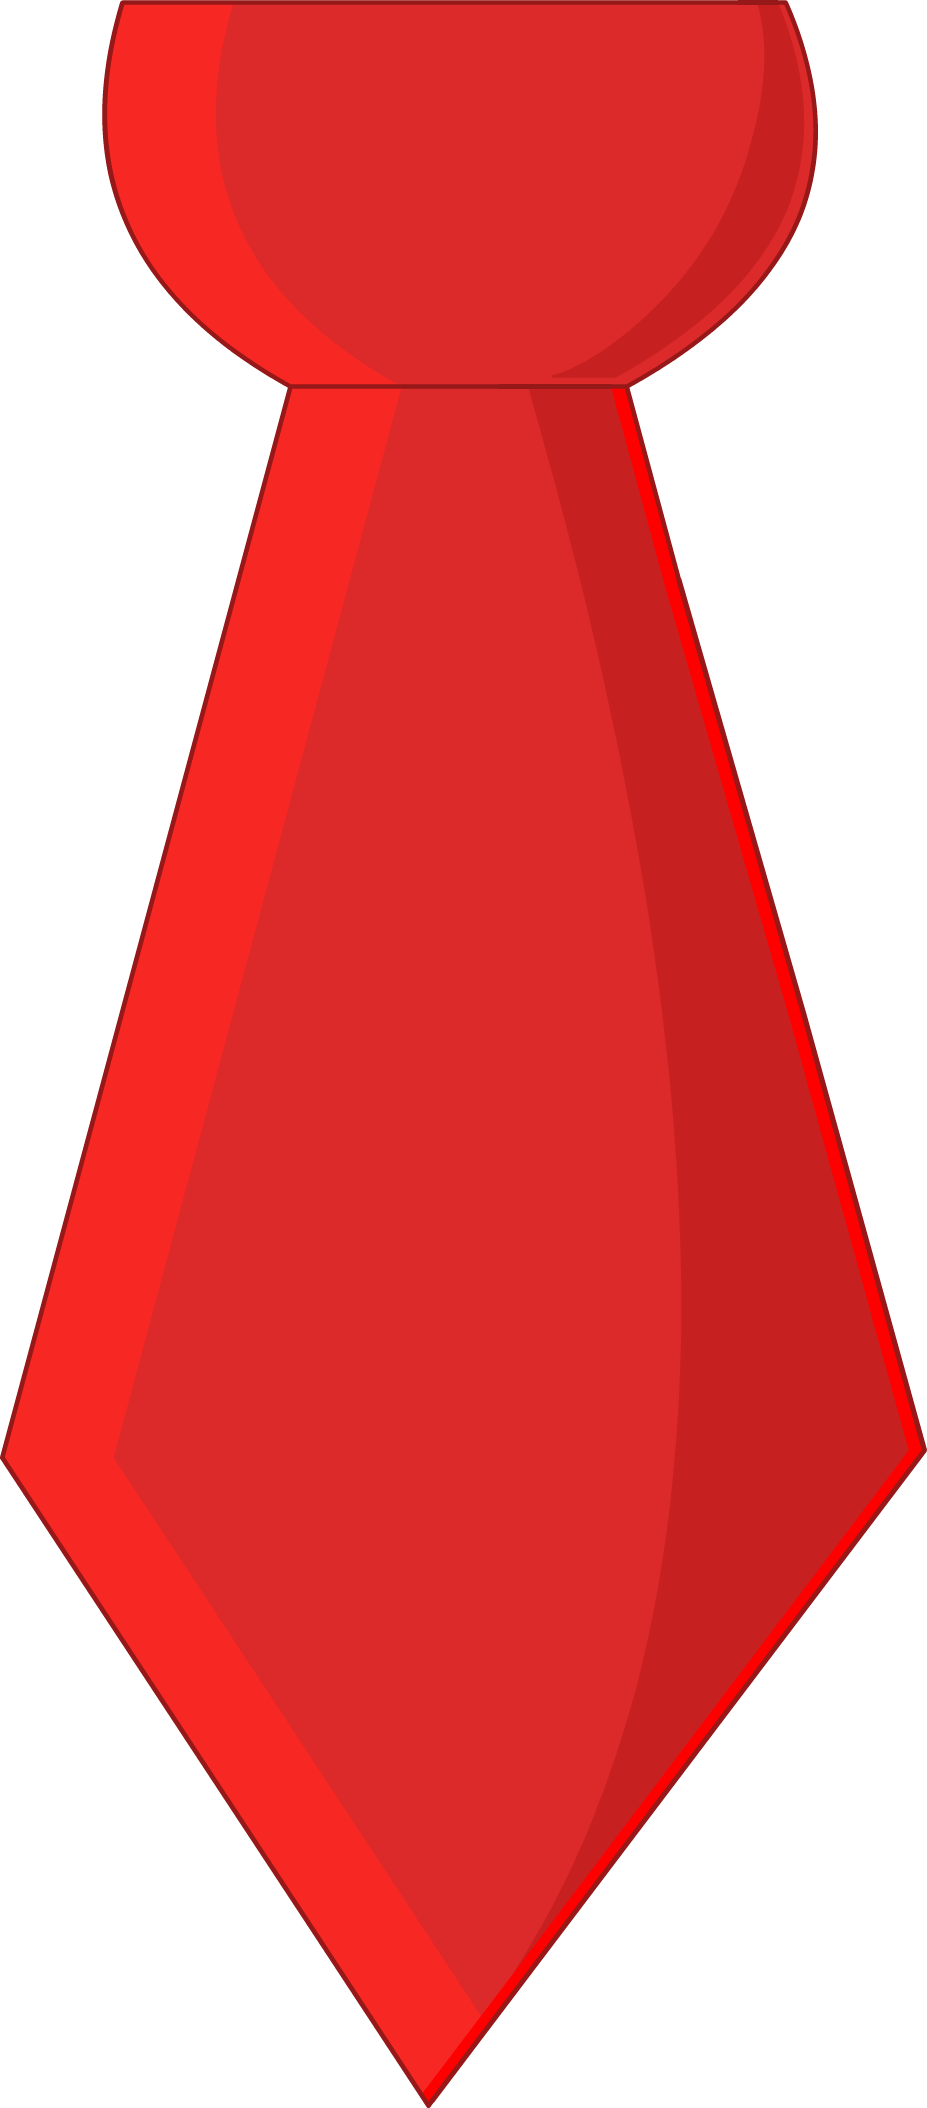 Red tie png. Image next top thingy